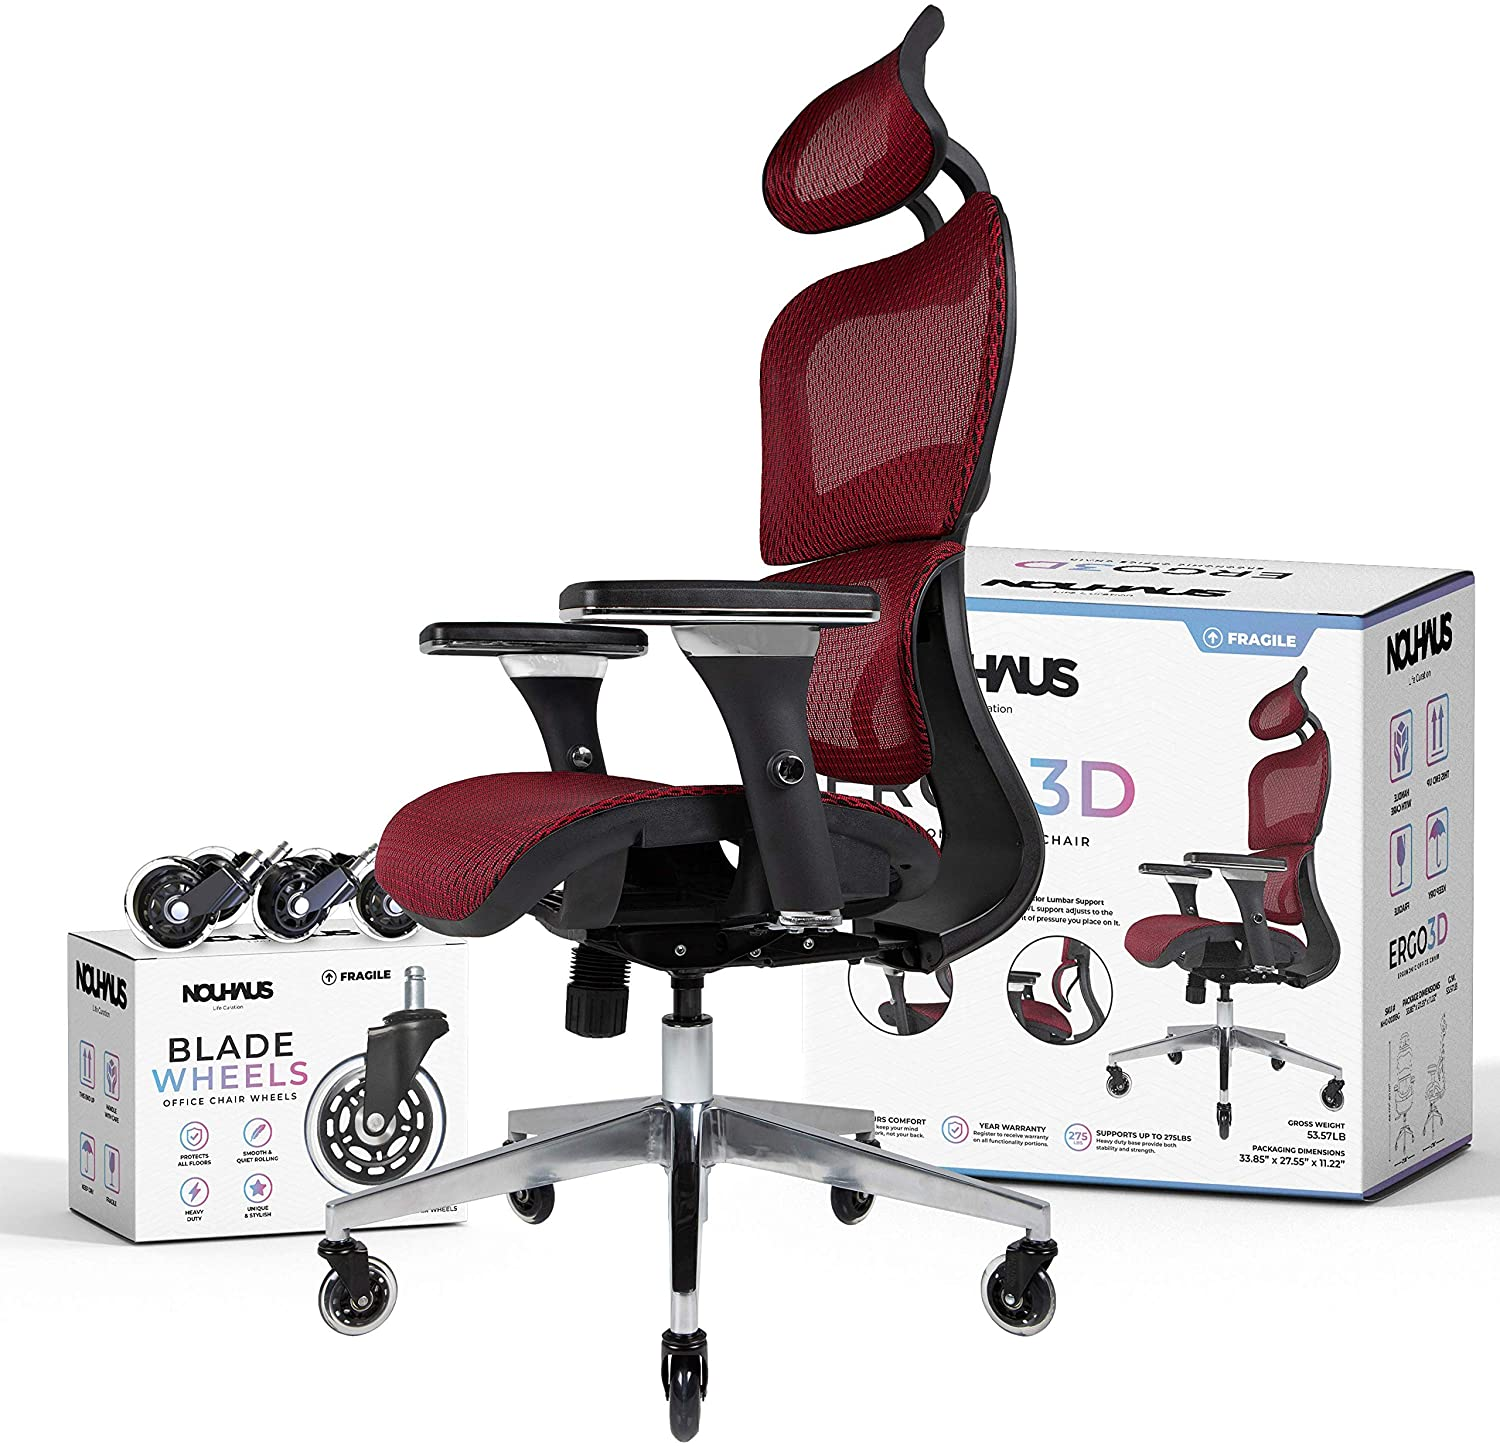 91WybTWbY2L. AC SL1500 - What is The Best Computer Chair For Long Hours Sitting? [Comfortable and Ergonomic] - ChairPicks